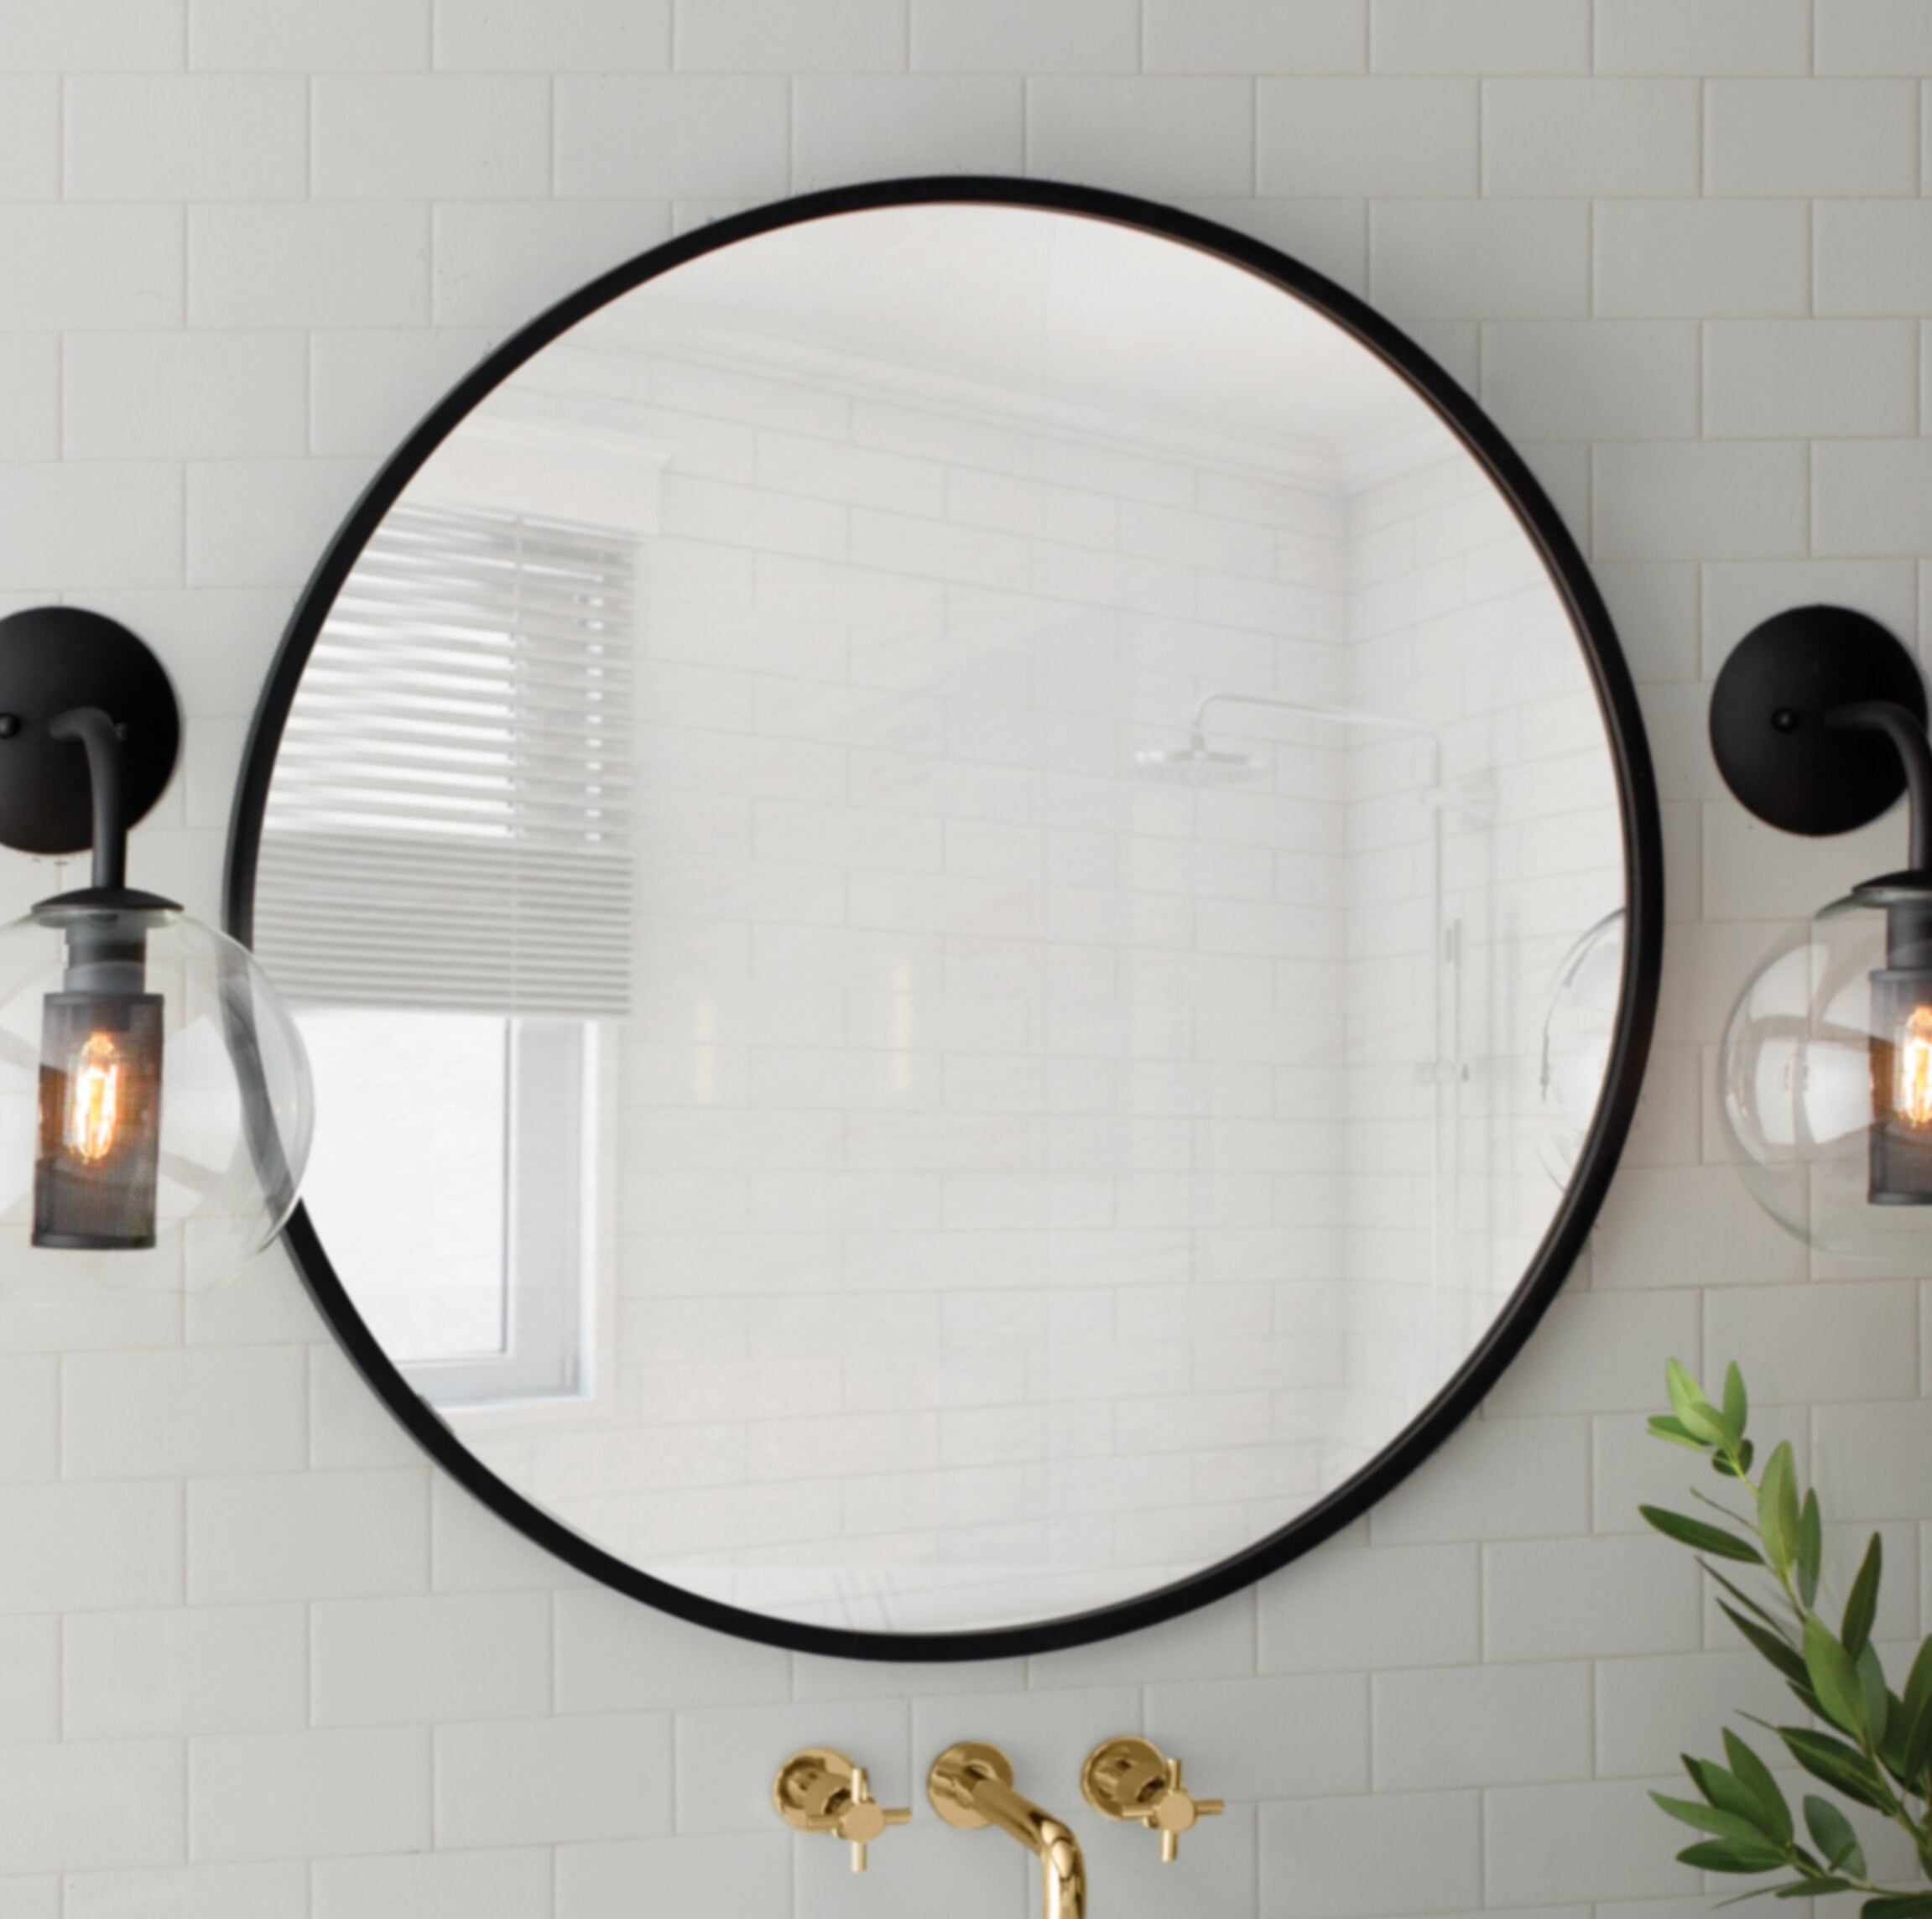 A black-rimmed round mirror on a wall